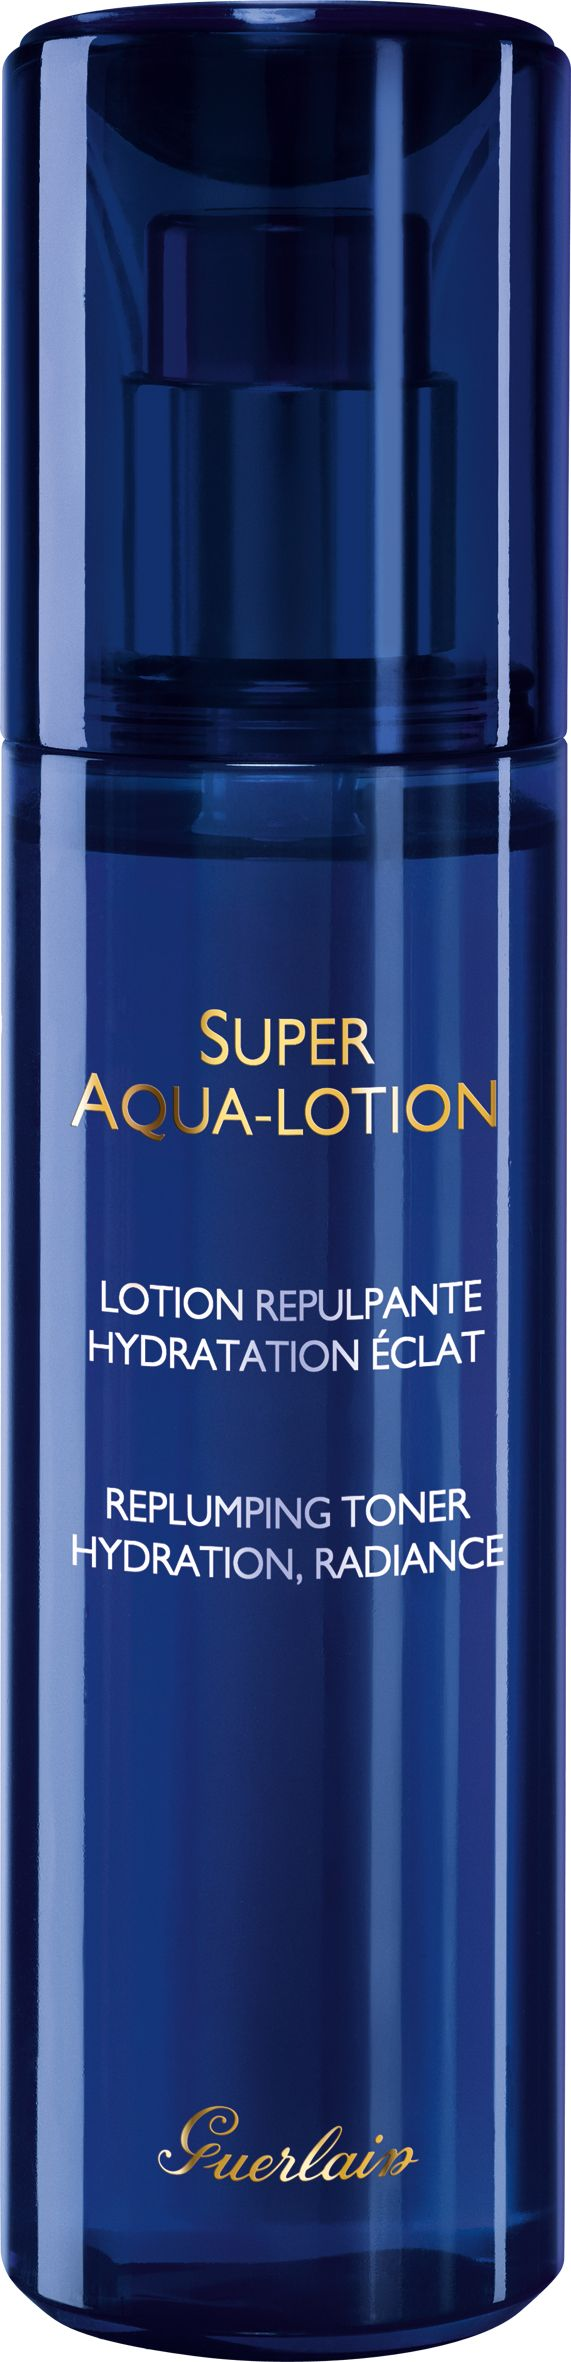 Super Aqua Lotion